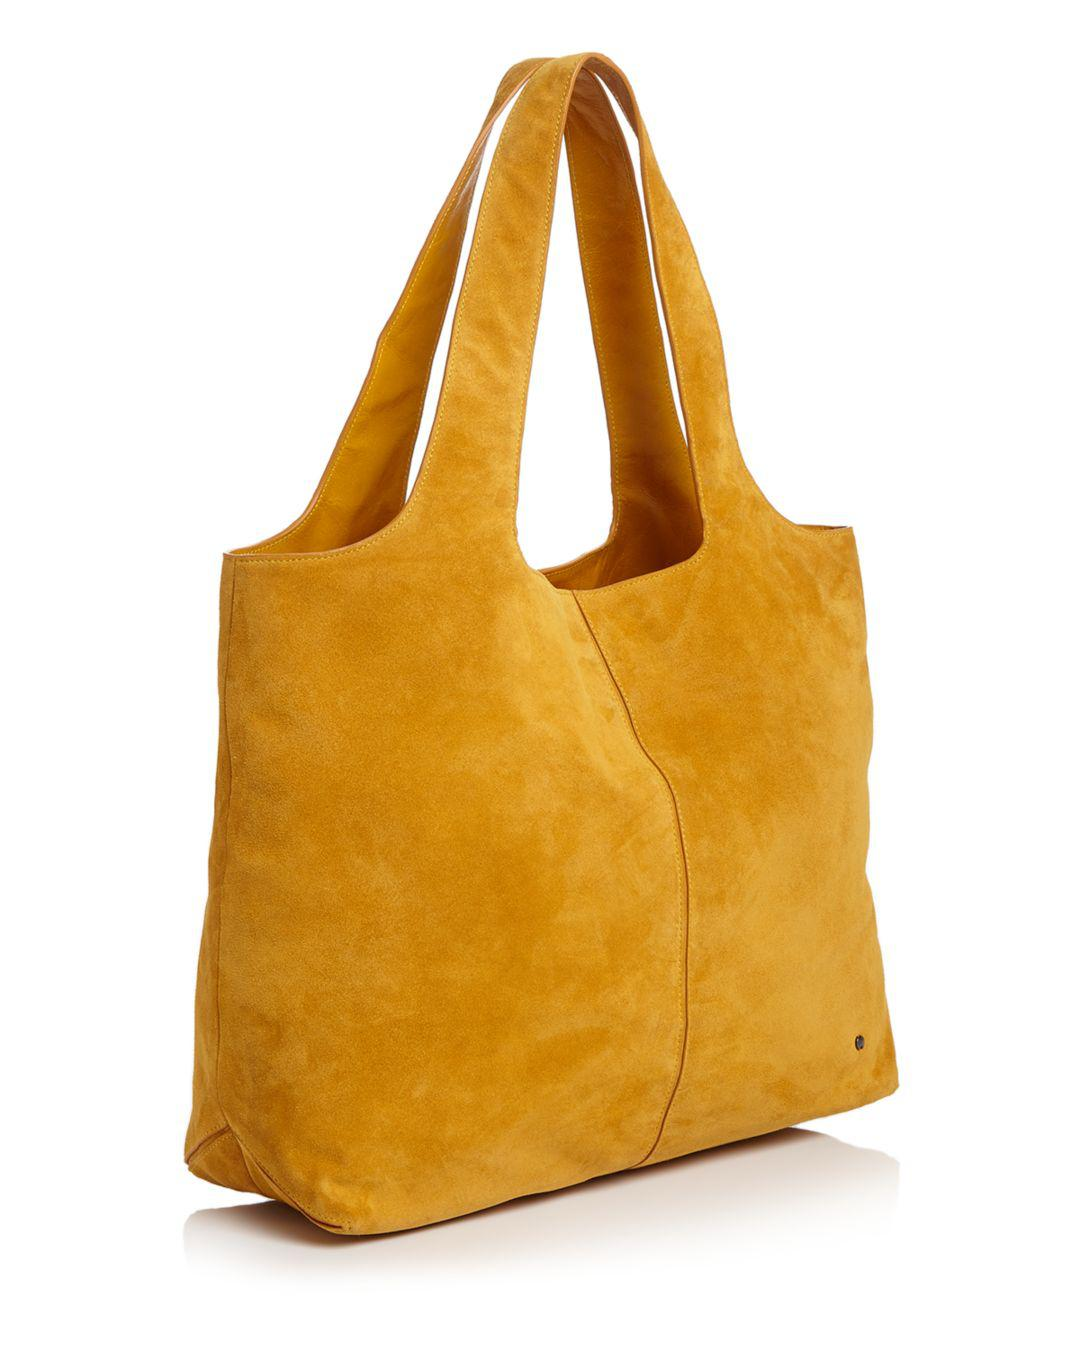 Halston Heritage Tina Soft Large Suede Tote in Yellow - Lyst 98c83264ff970